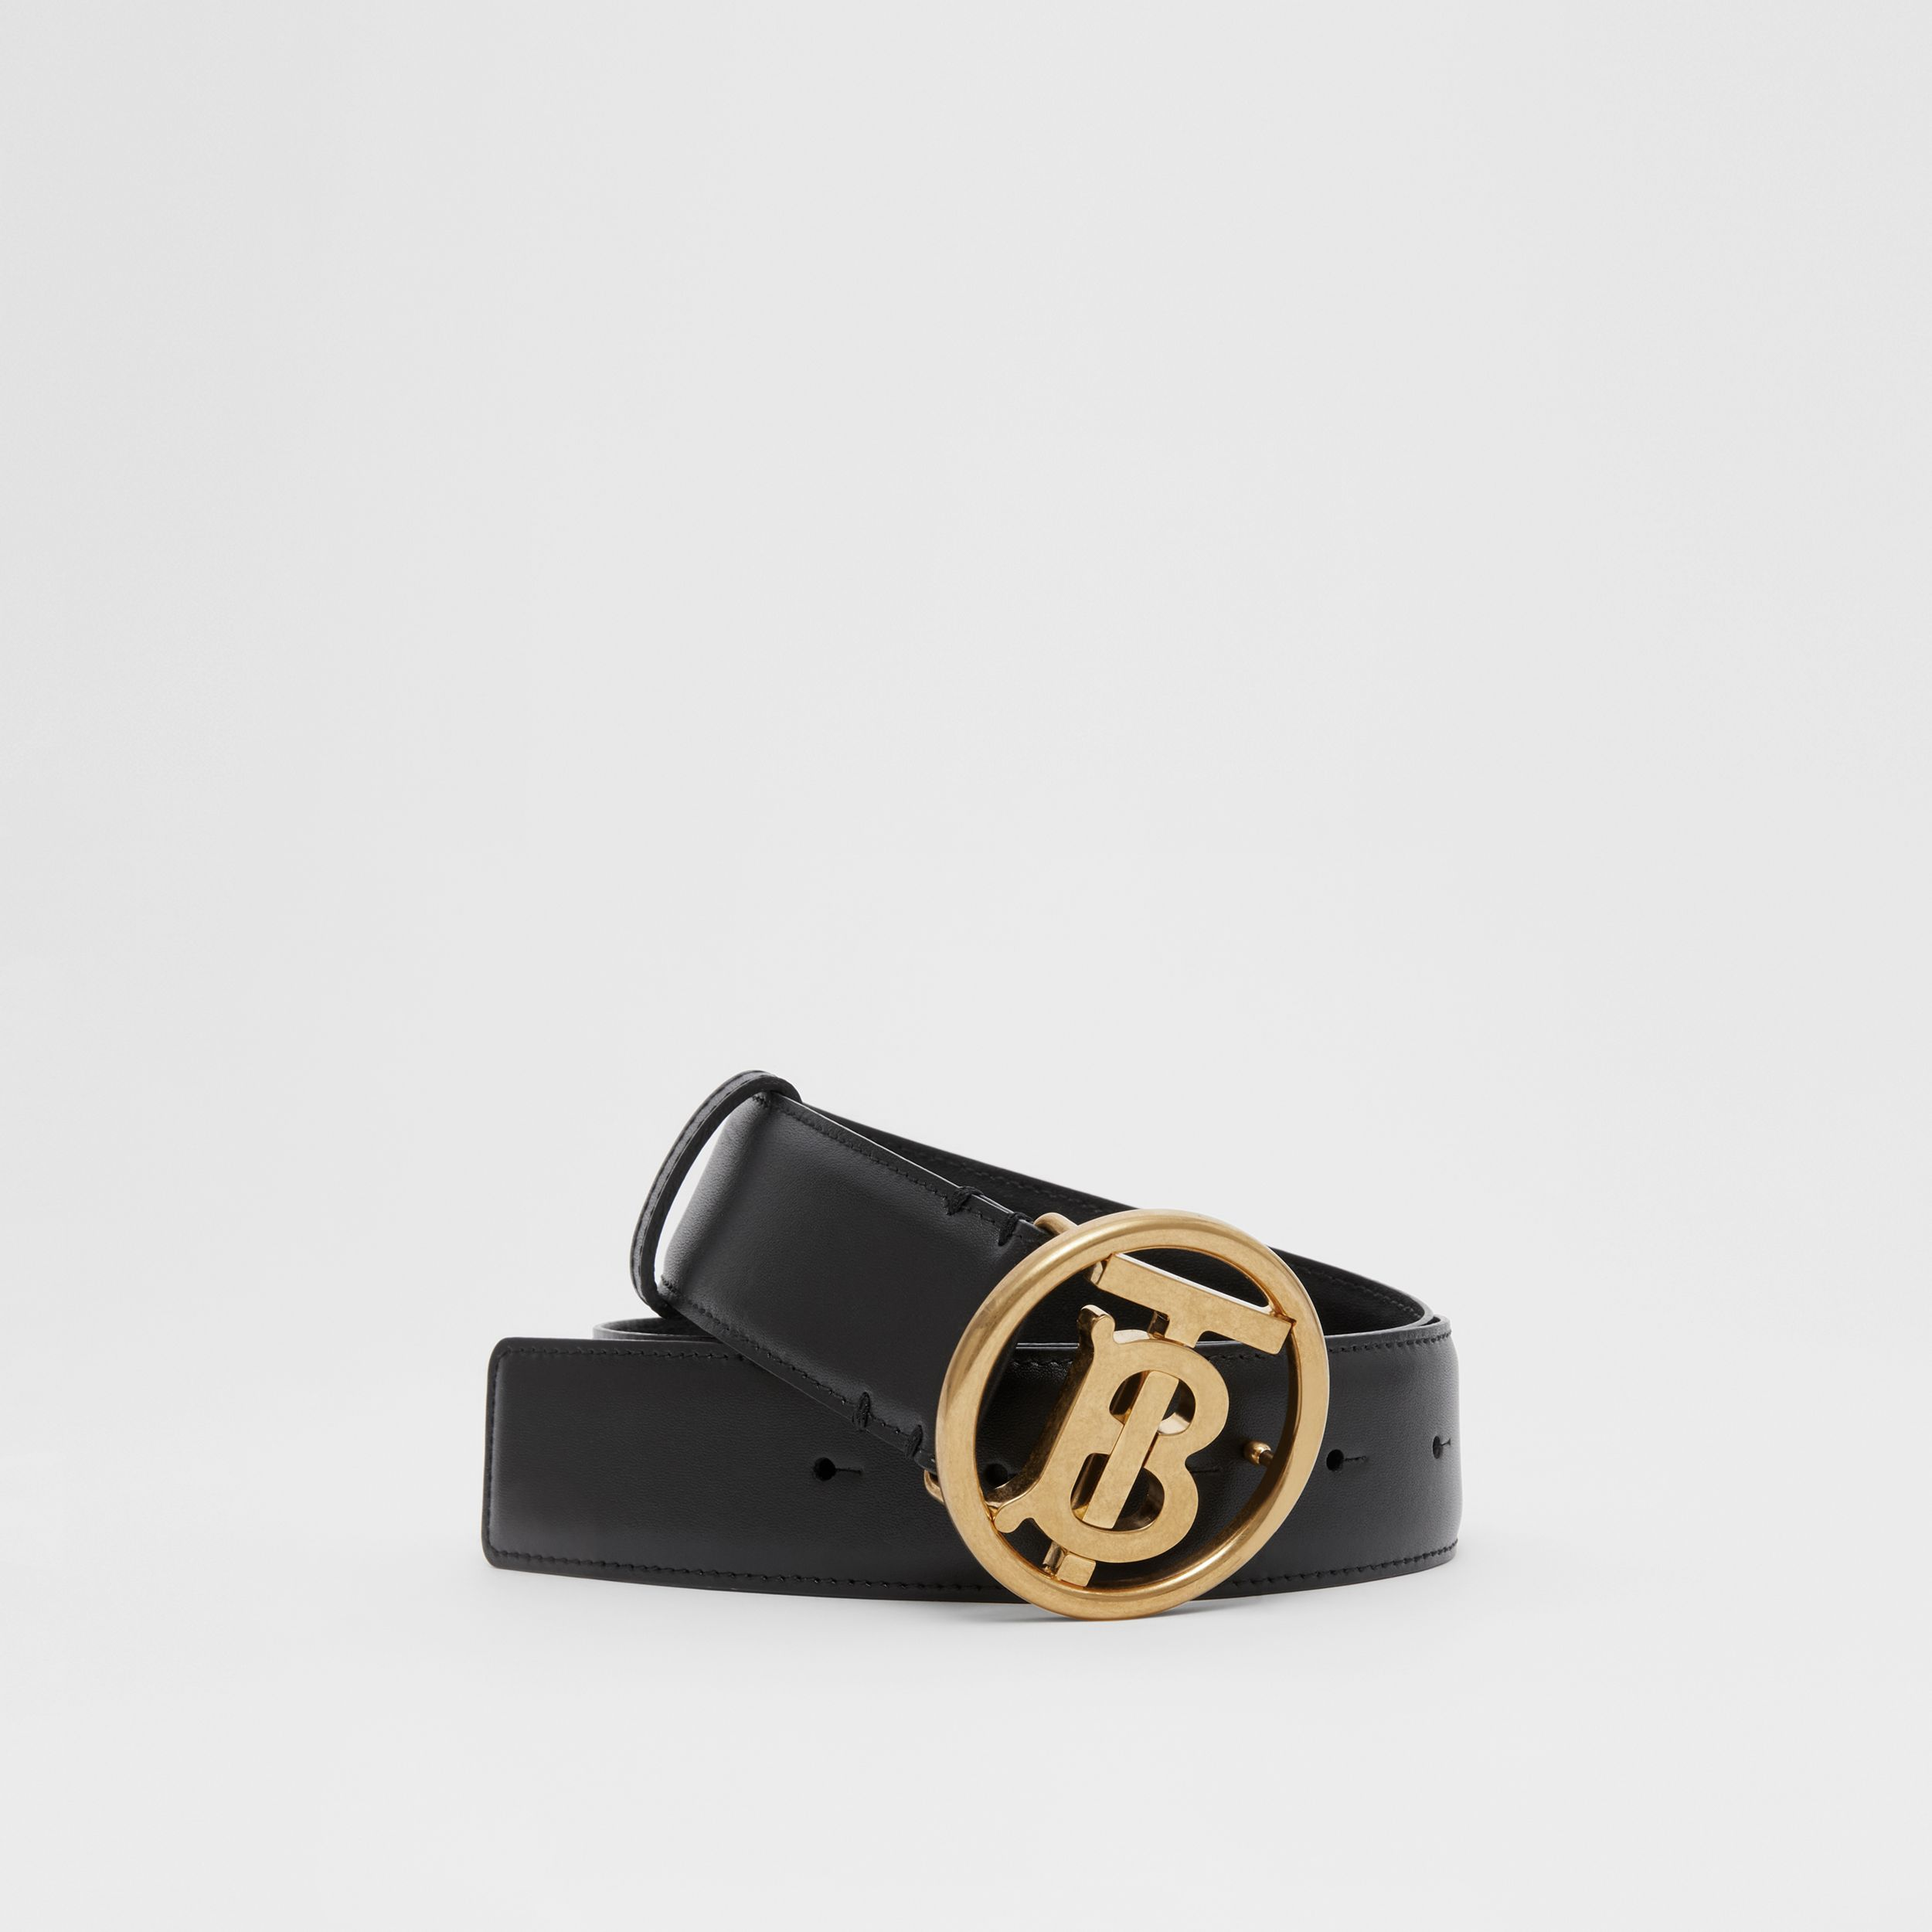 Monogram Motif Leather Belt in Black | Burberry - 1